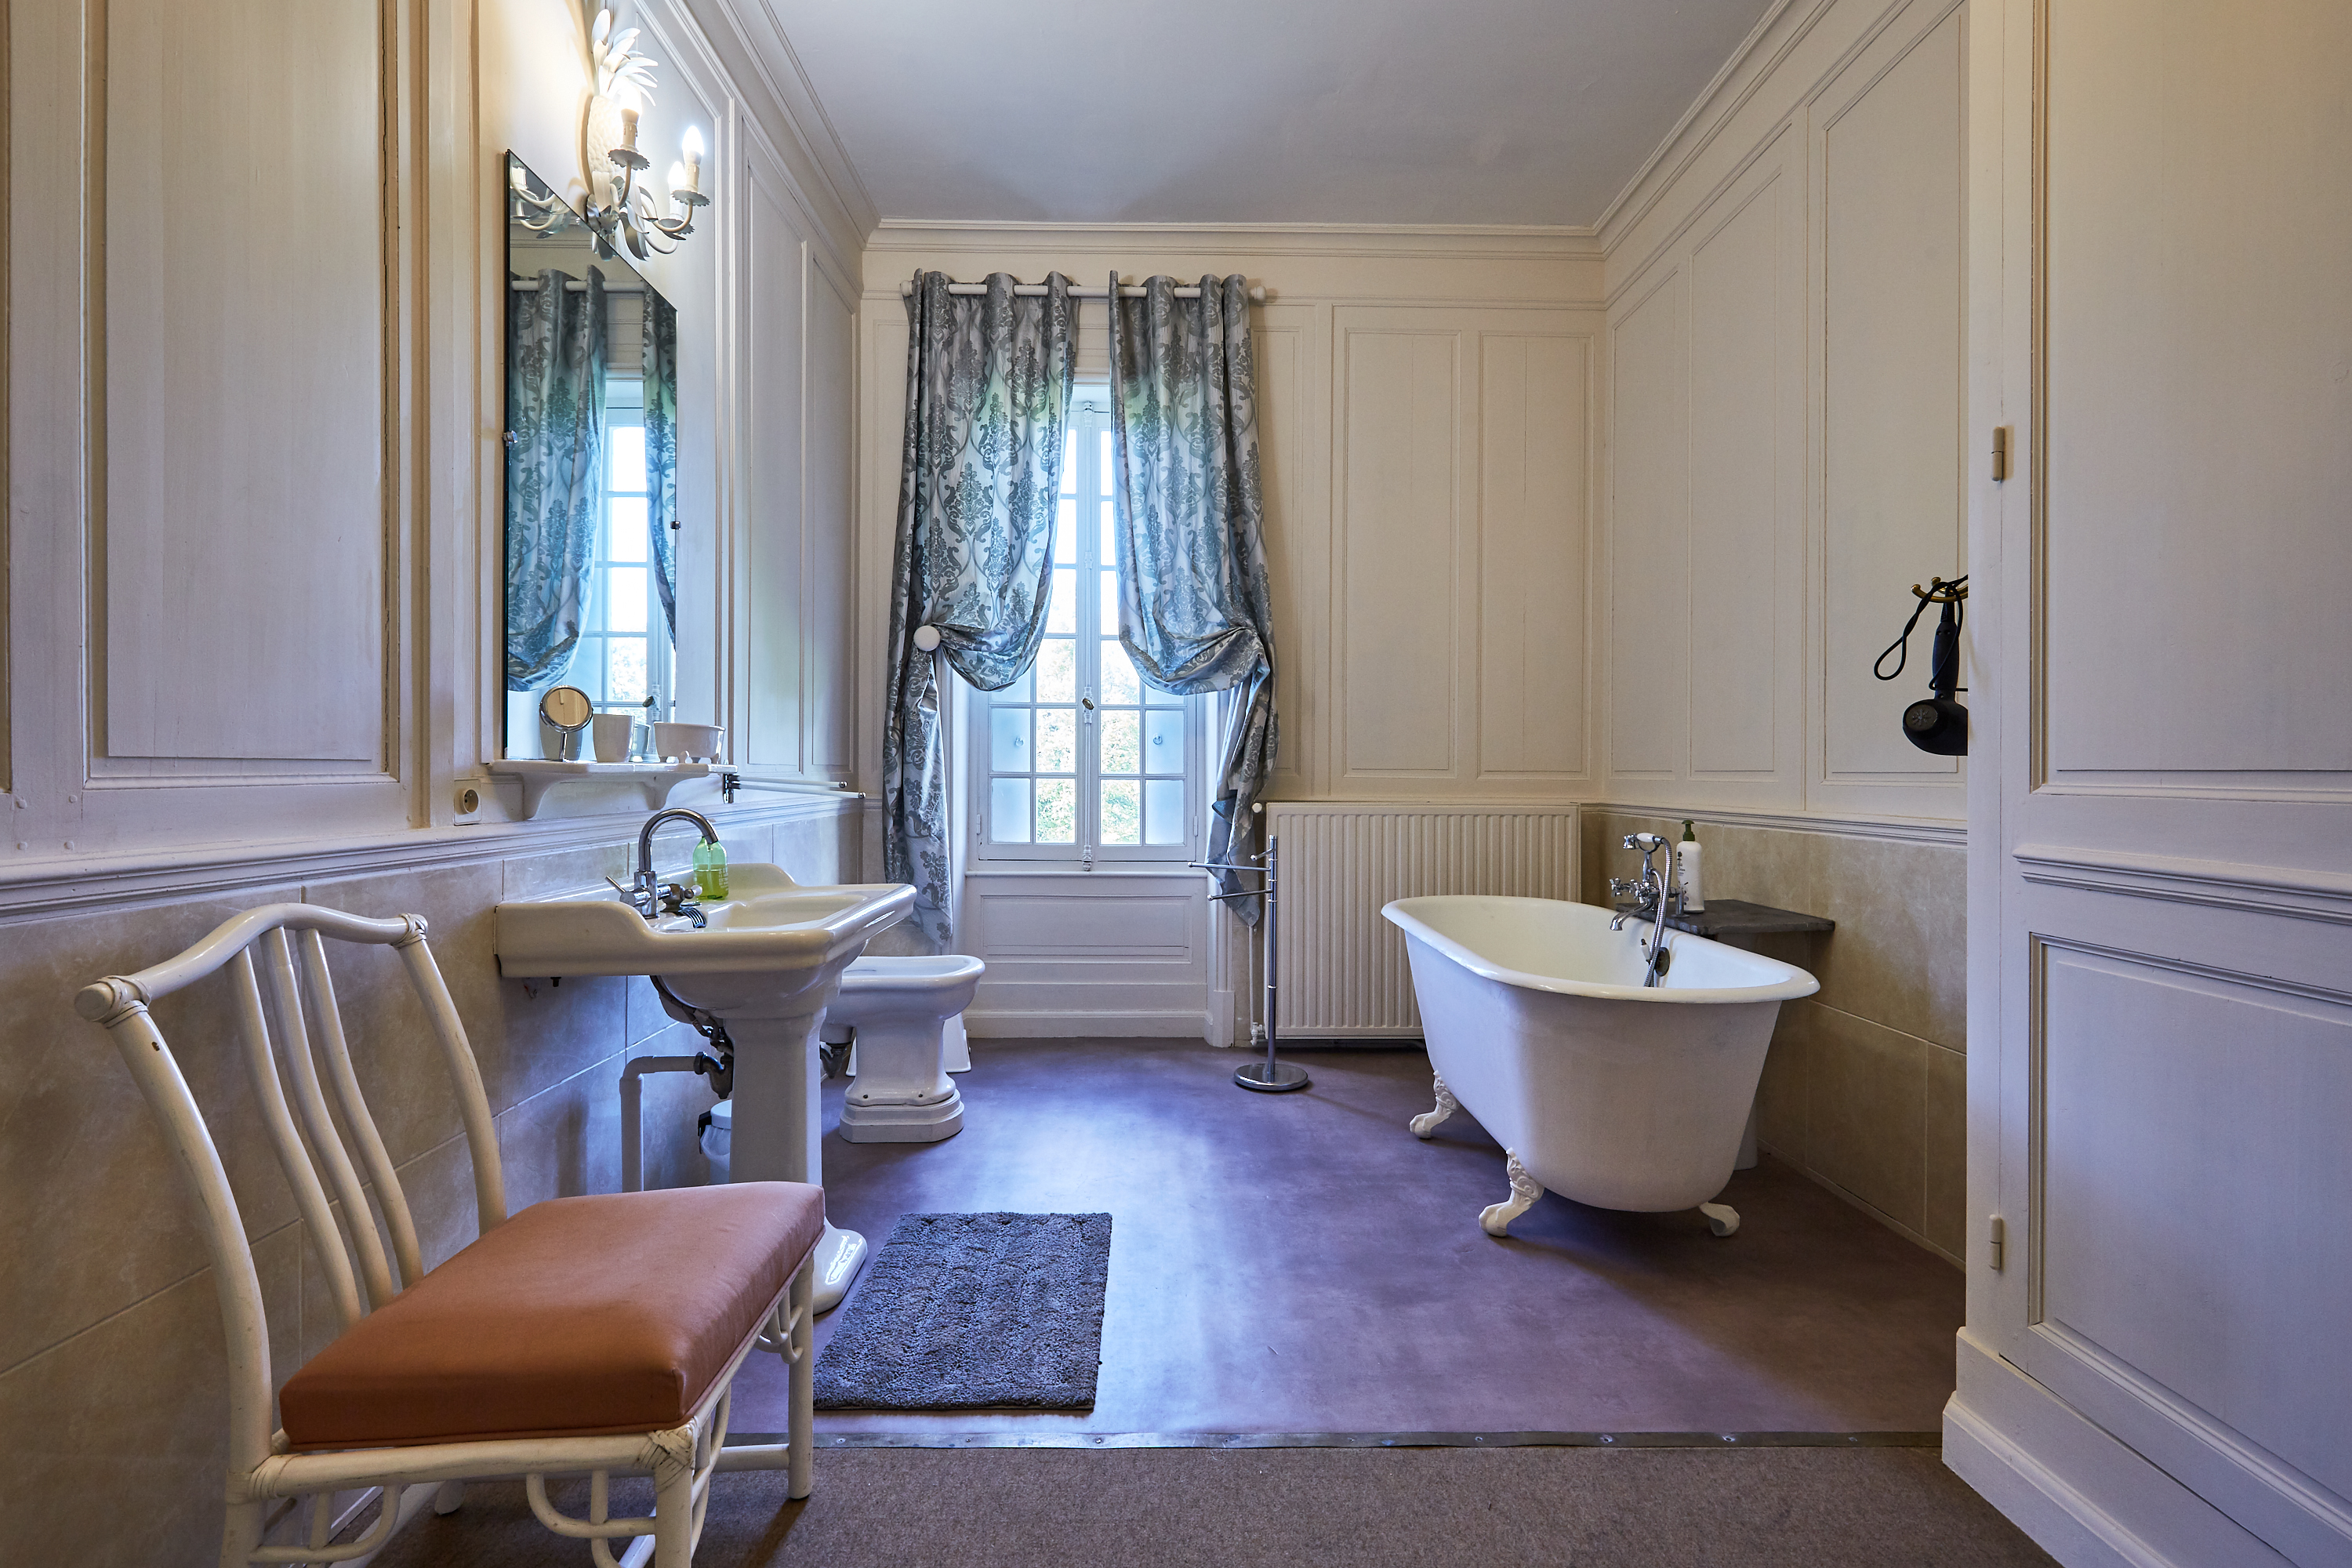 Bathroom Comtesse Suite